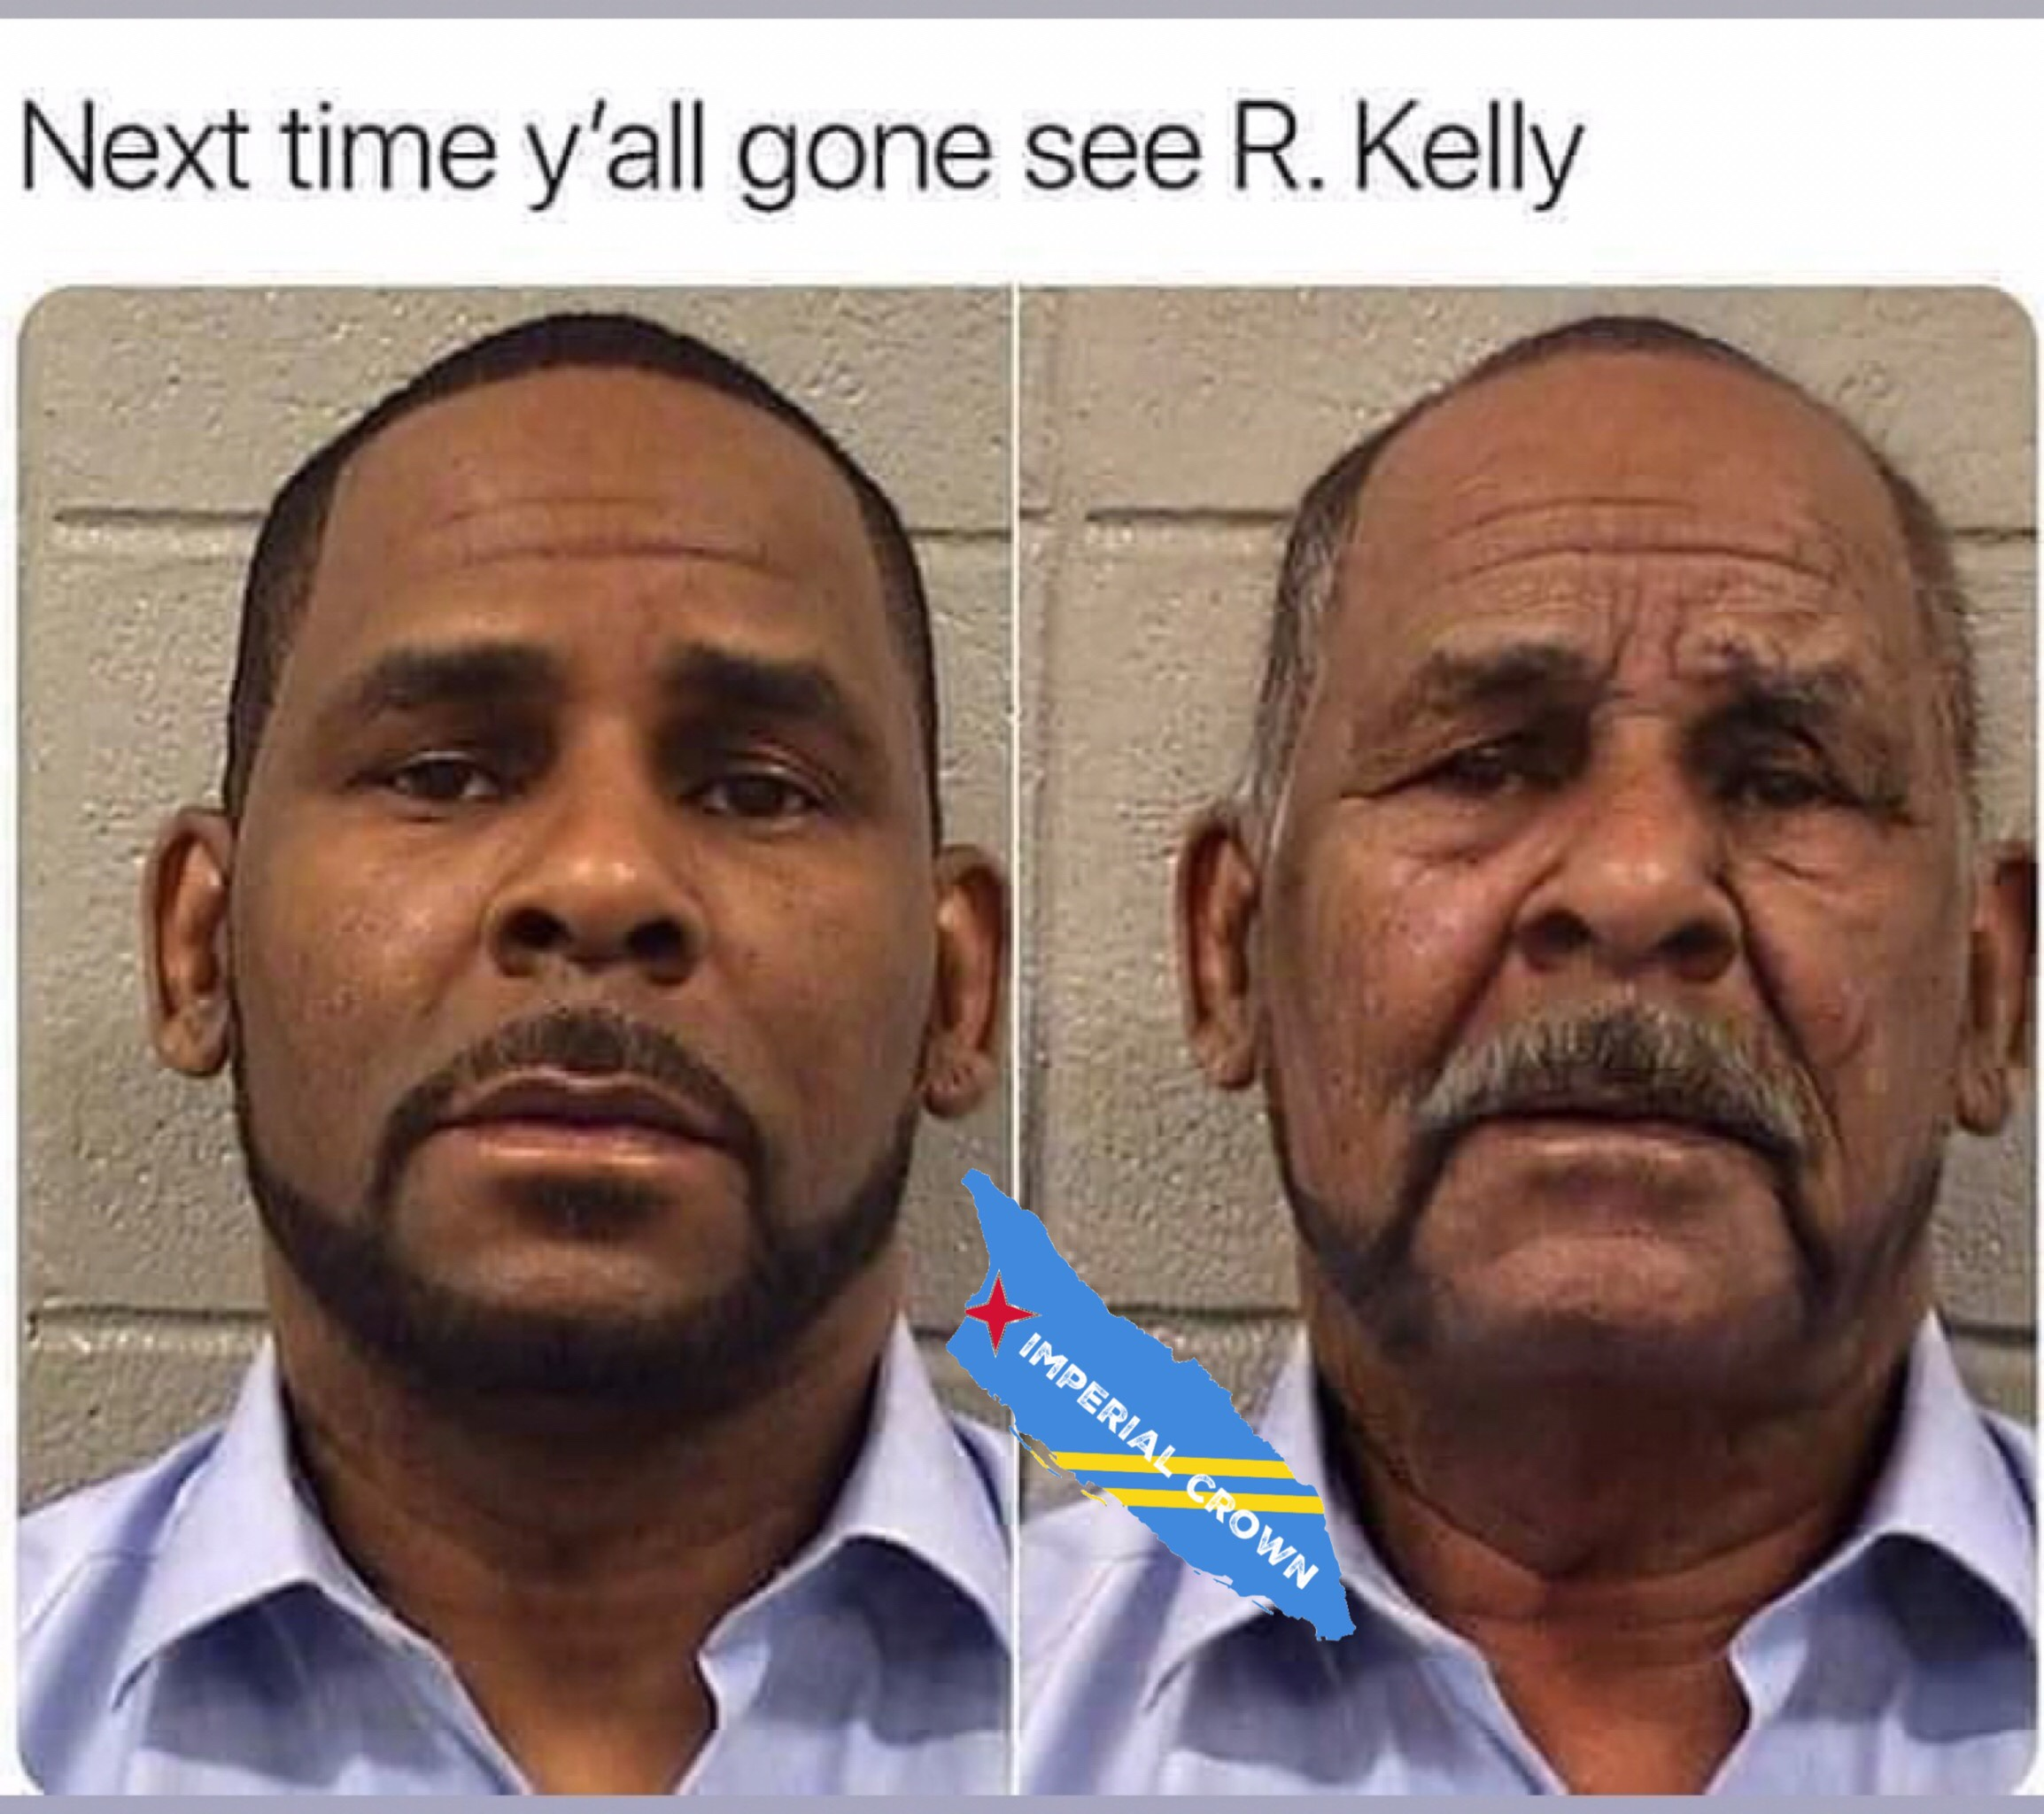 Next time y'all gonna see R.Kelly